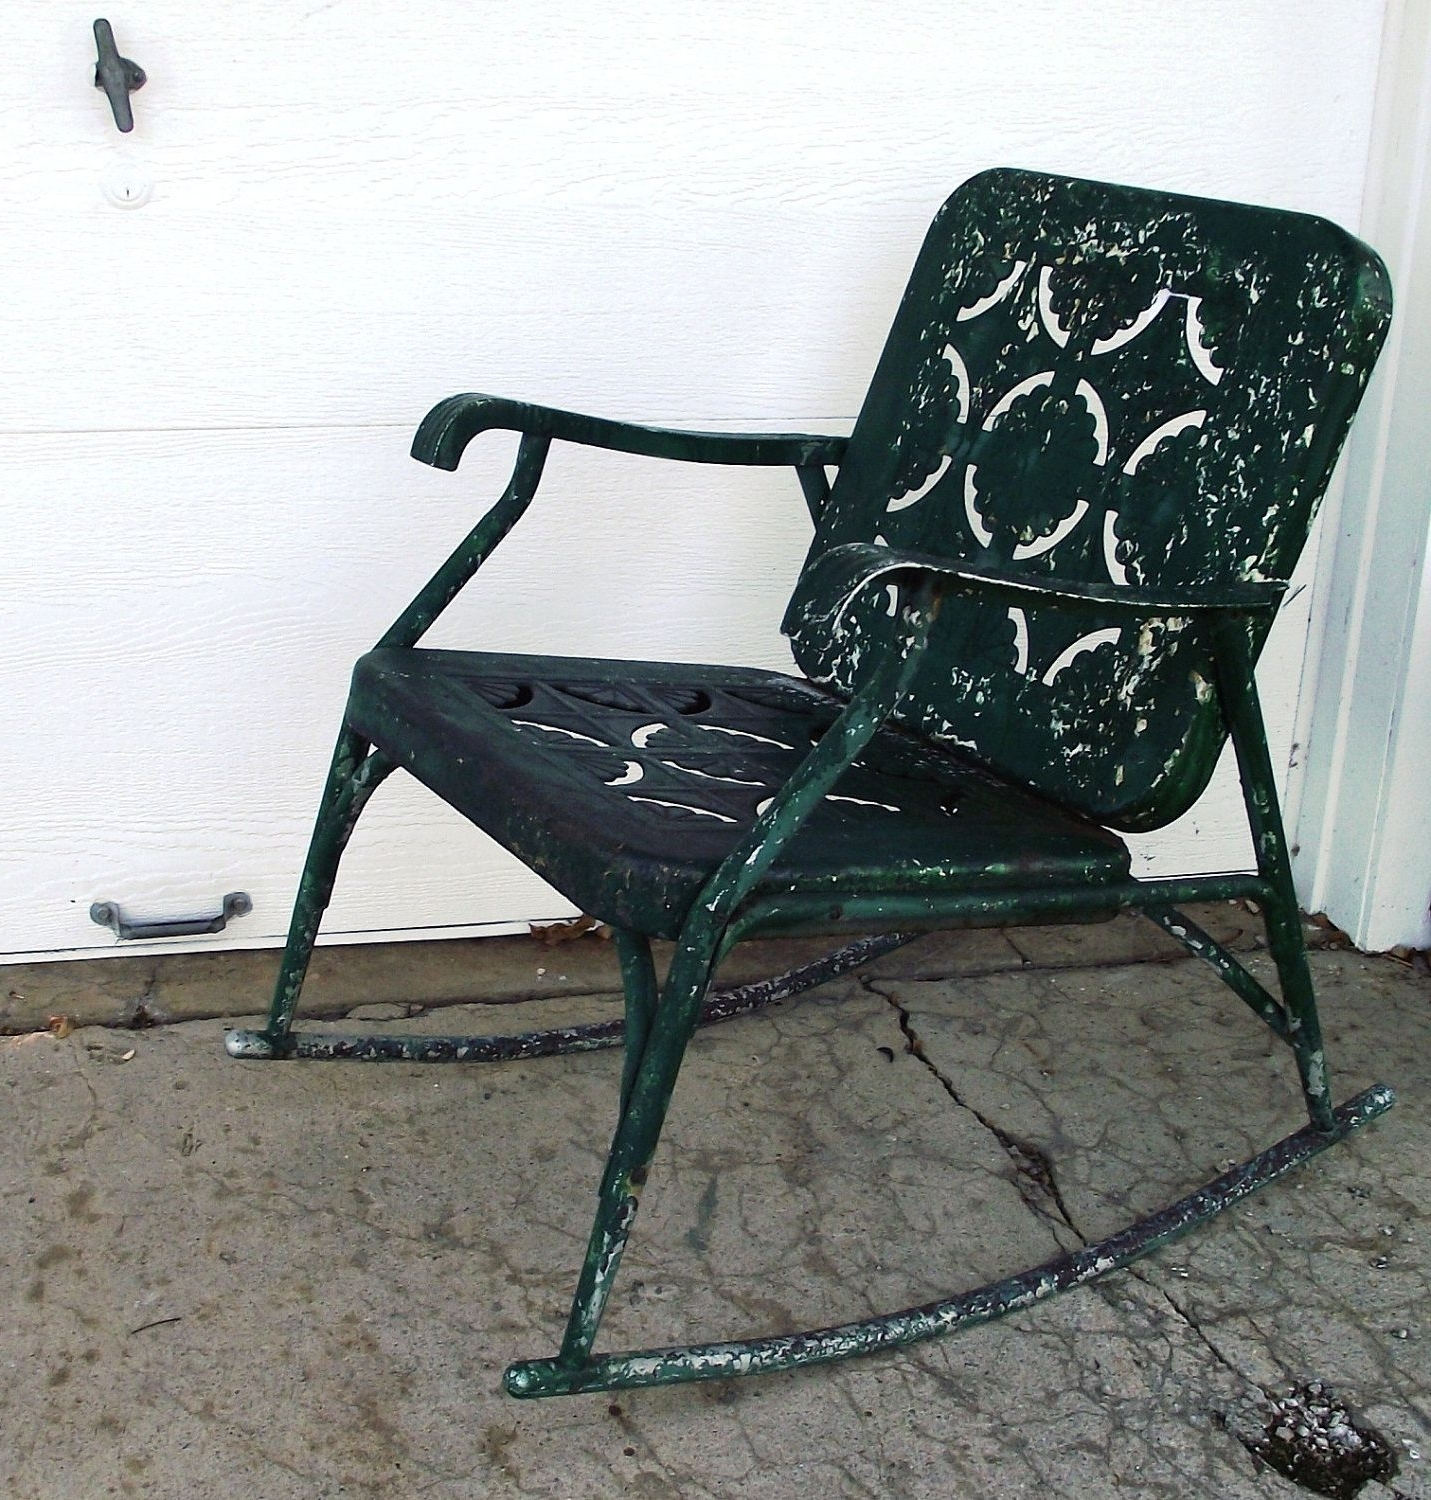 Vintage Metal Rocking Patio Chairs For Recent Vintage Garden Green Metal Rocking Chair Cutoutjodysvintage (View 11 of 15)